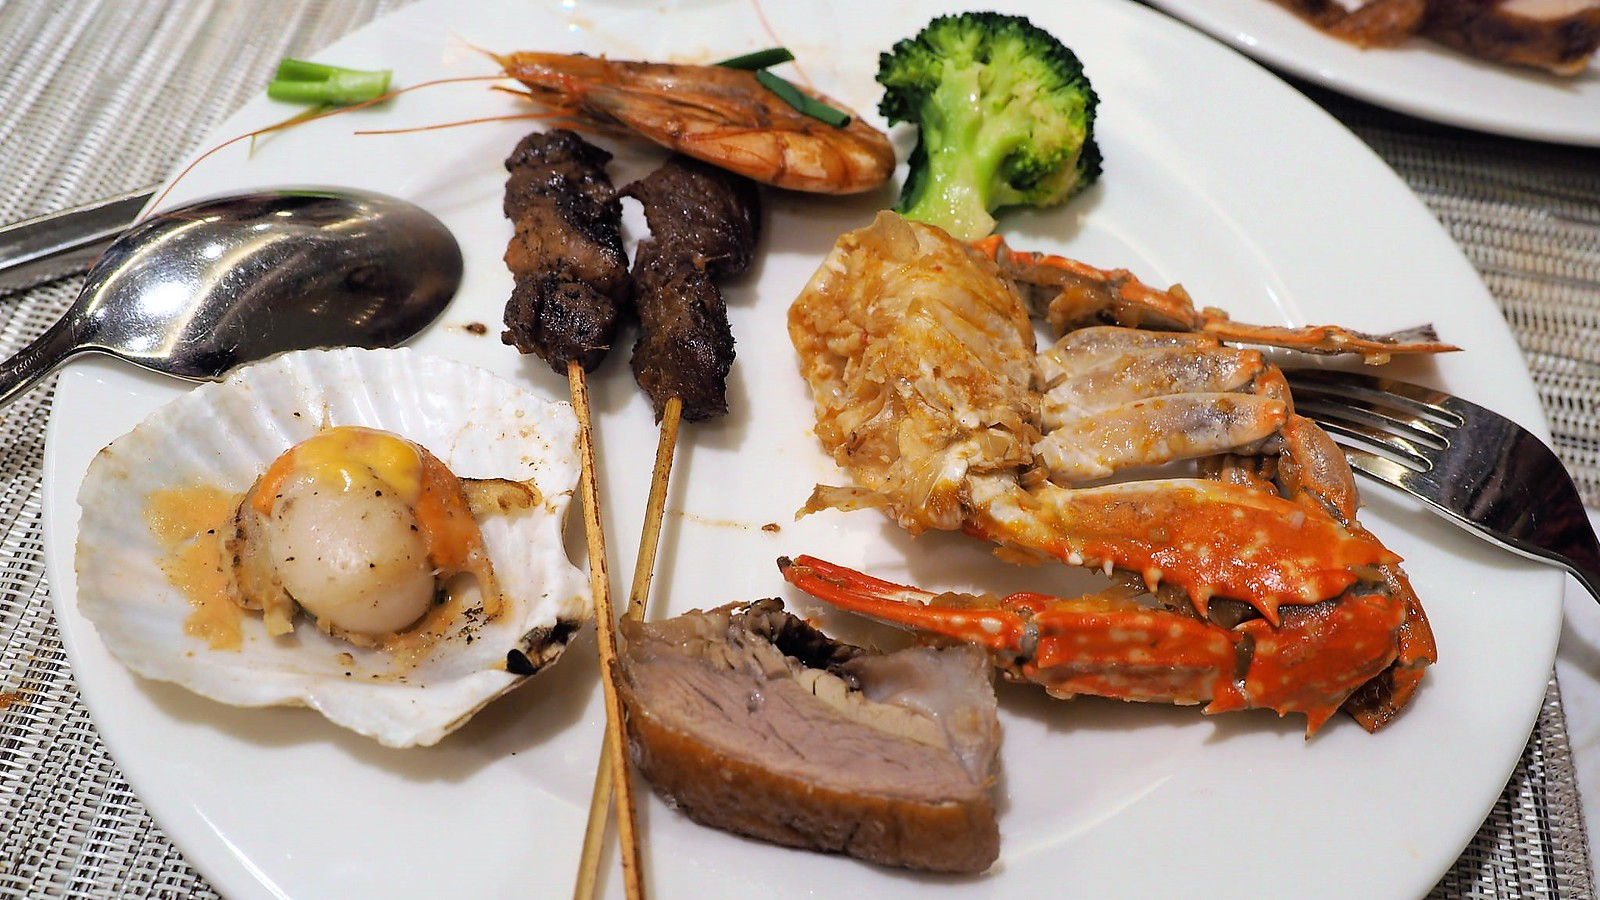 My buffet plate. Scallop, roasted duck, chili soft-shell crab, satay, prawn and broccoli